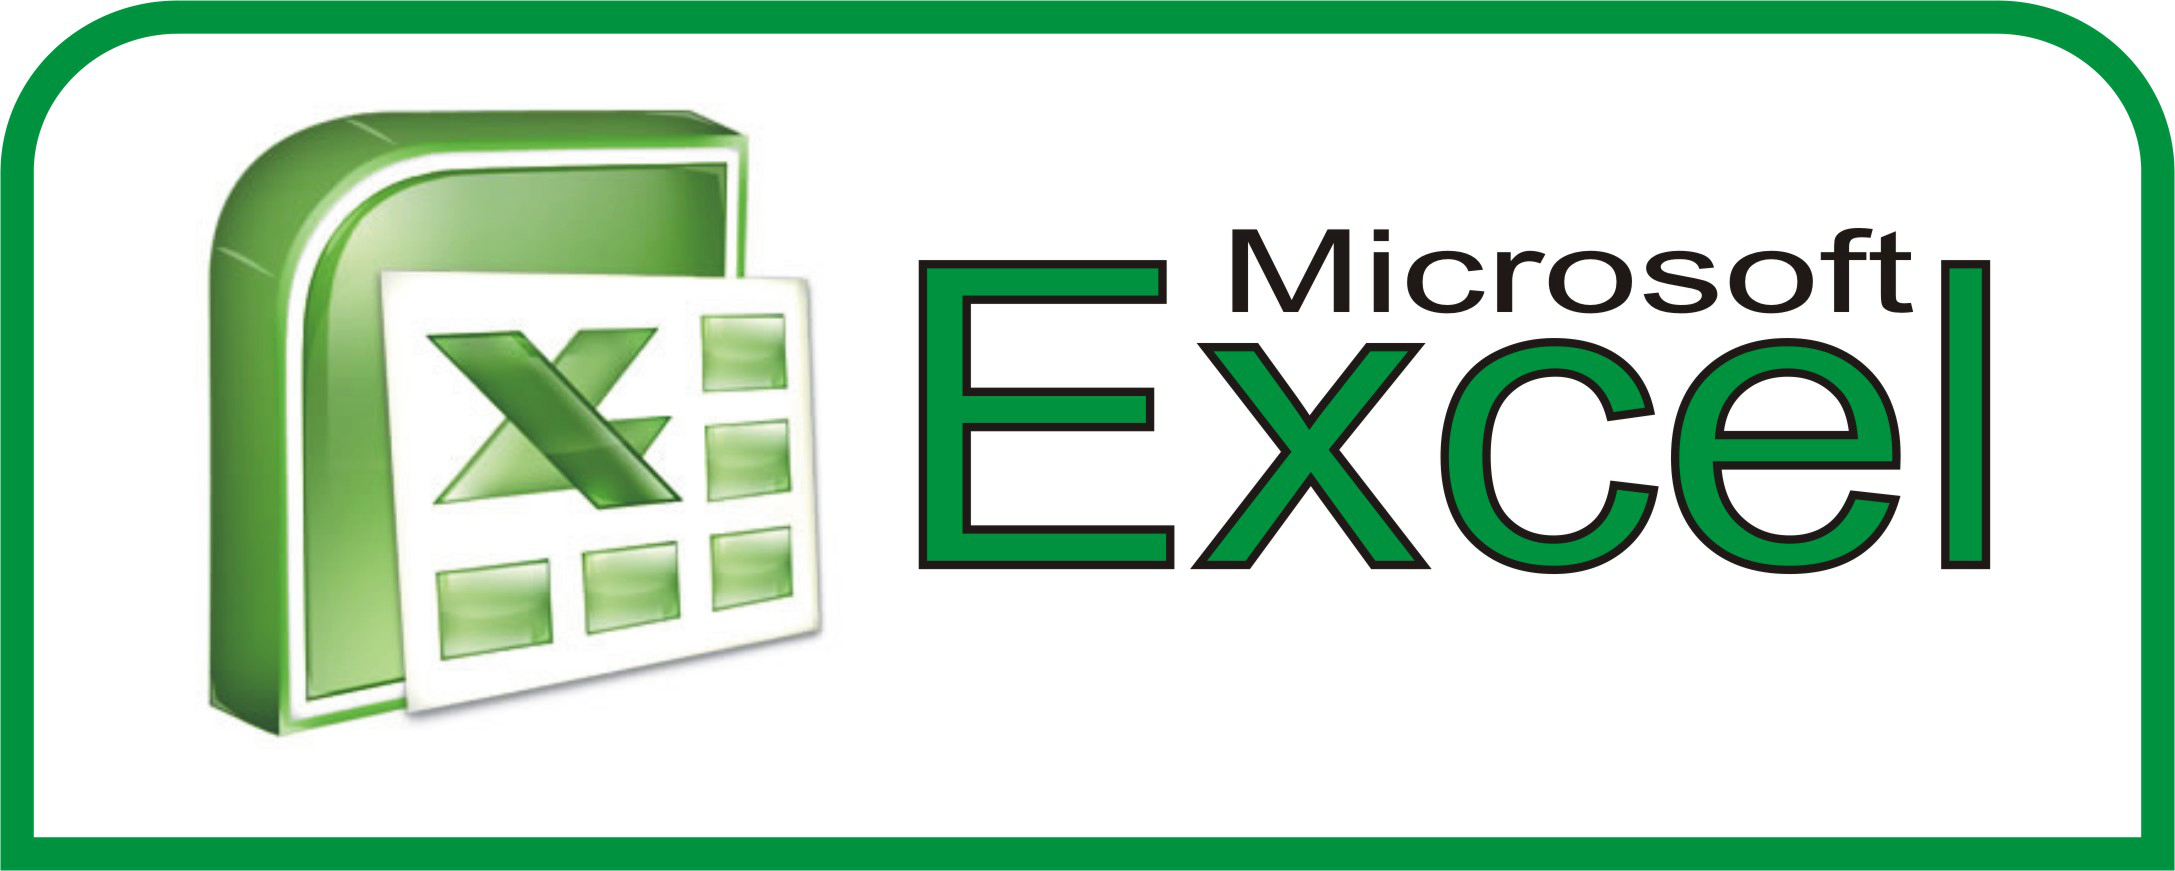 Ediblewildsus  Pleasant  Excel Shortcuts You Probably Didnt Know About  Techdissected With Entrancing Replace In Excel  Besides Present Value Annuity Excel Furthermore Excel Integration Function With Endearing Excel Message Board Also How To Create Bar Graph In Excel  In Addition Snowball Debt Excel And How To Insert The Current Date In Excel As Well As Excel Formulas Not Updating Automatically Additionally Lock Excel Cell From Techdissectedcom With Ediblewildsus  Entrancing  Excel Shortcuts You Probably Didnt Know About  Techdissected With Endearing Replace In Excel  Besides Present Value Annuity Excel Furthermore Excel Integration Function And Pleasant Excel Message Board Also How To Create Bar Graph In Excel  In Addition Snowball Debt Excel From Techdissectedcom